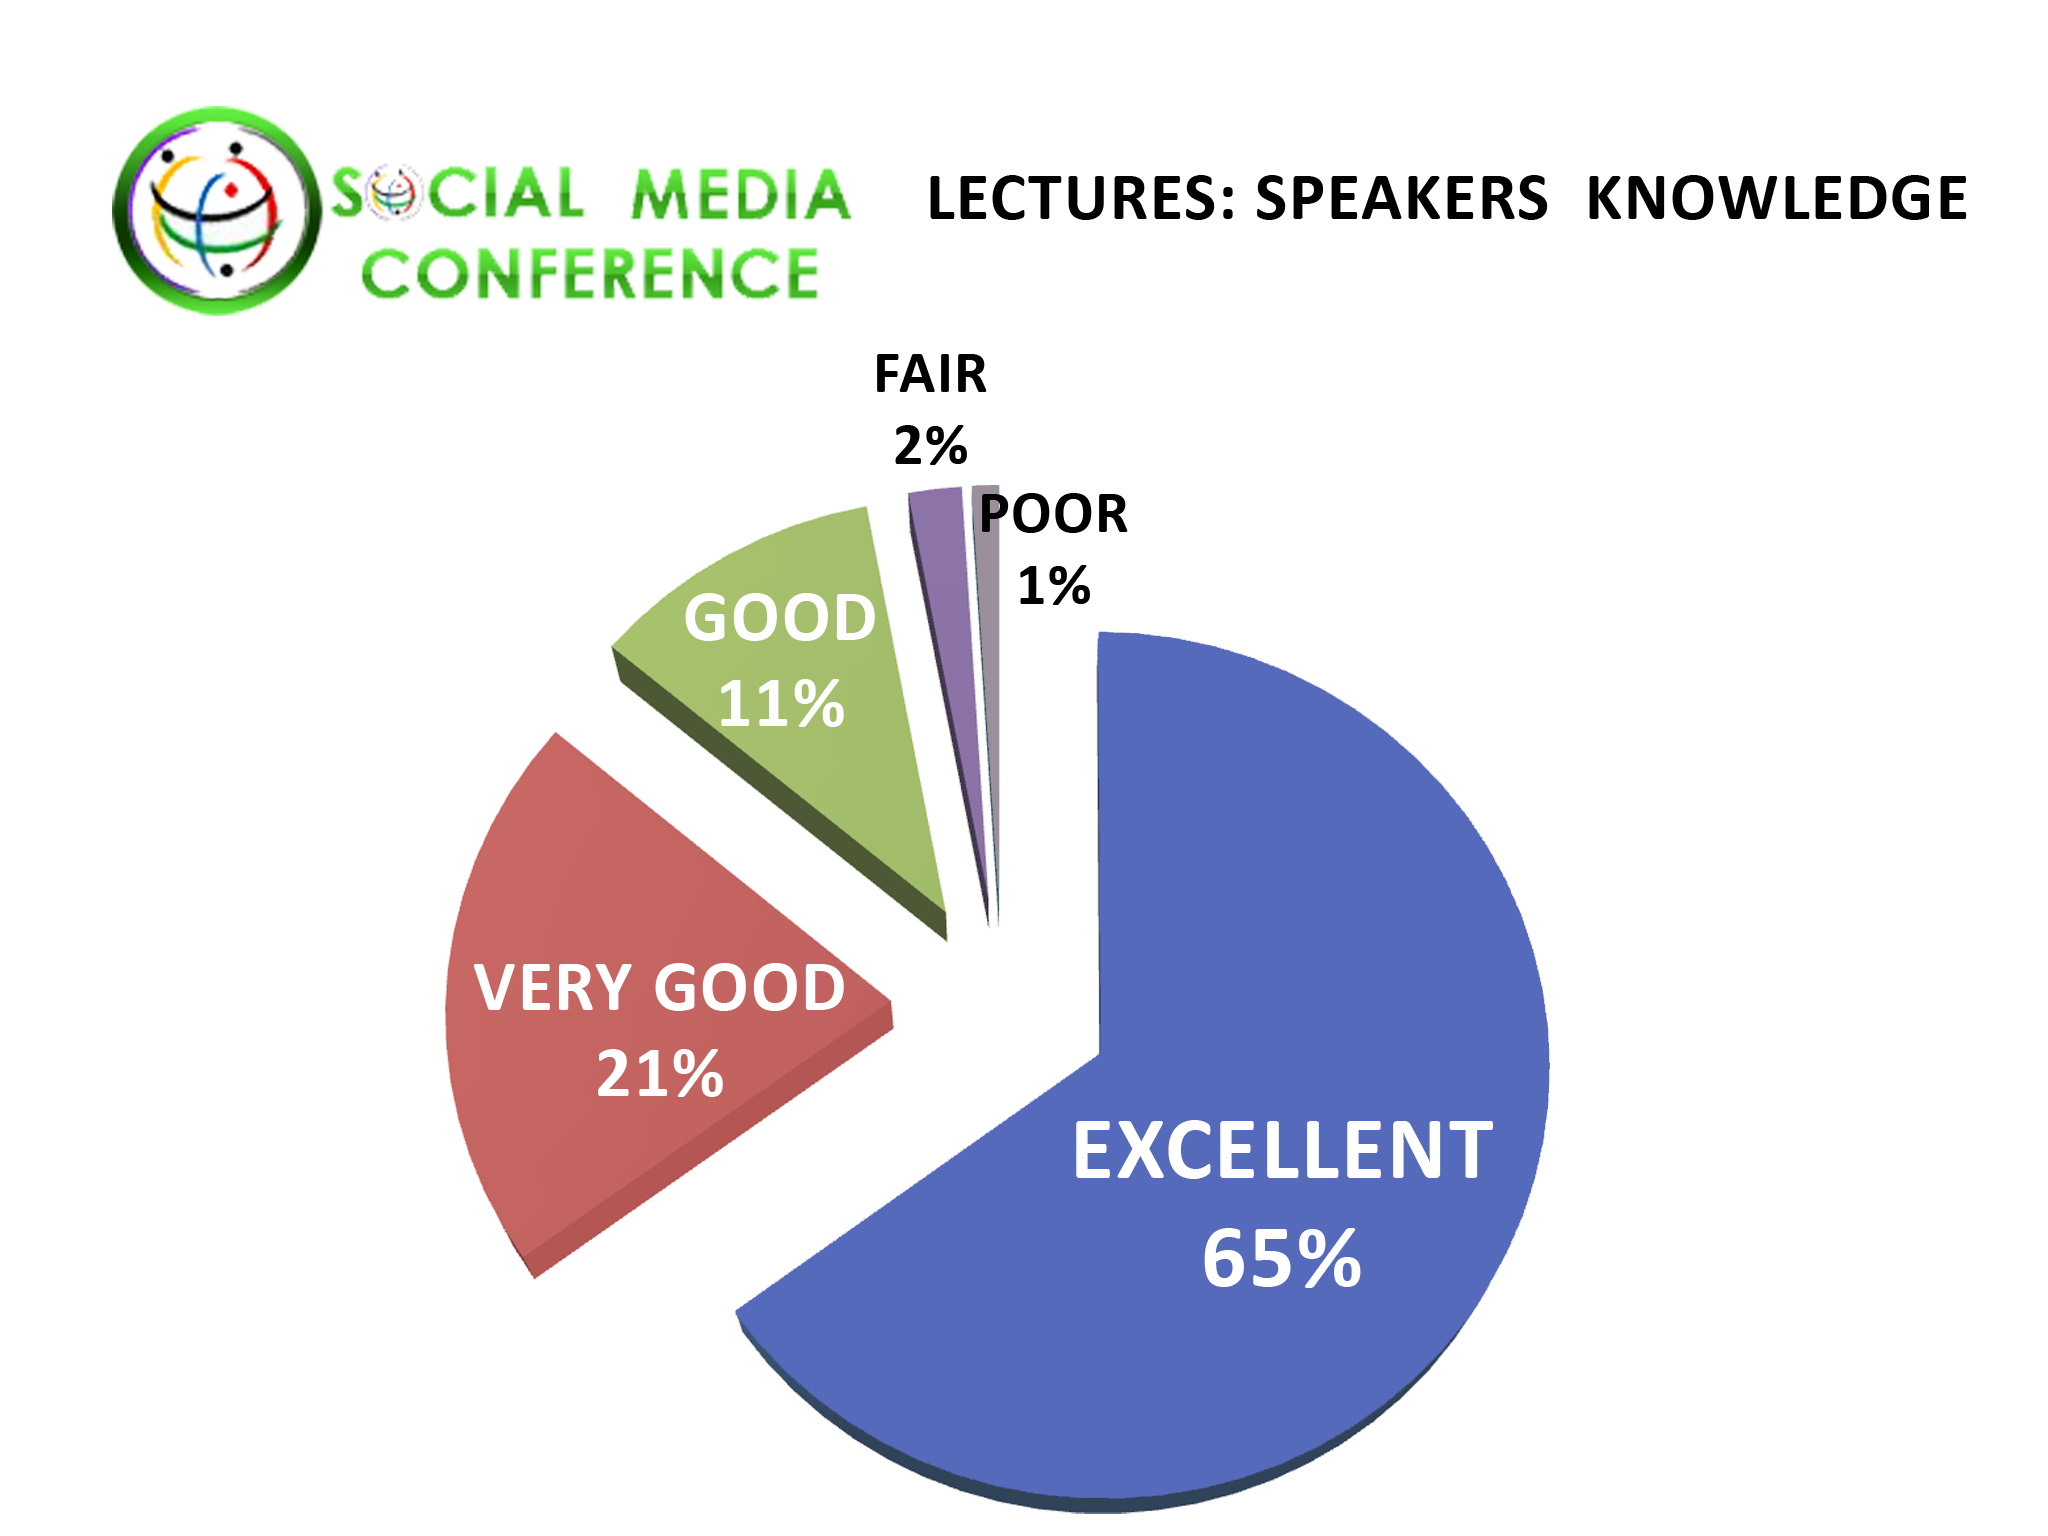 Social Networking Conference January 2012 Lecture Statistics Online and Mobile Dating Business Speaker Knowledge Ratings